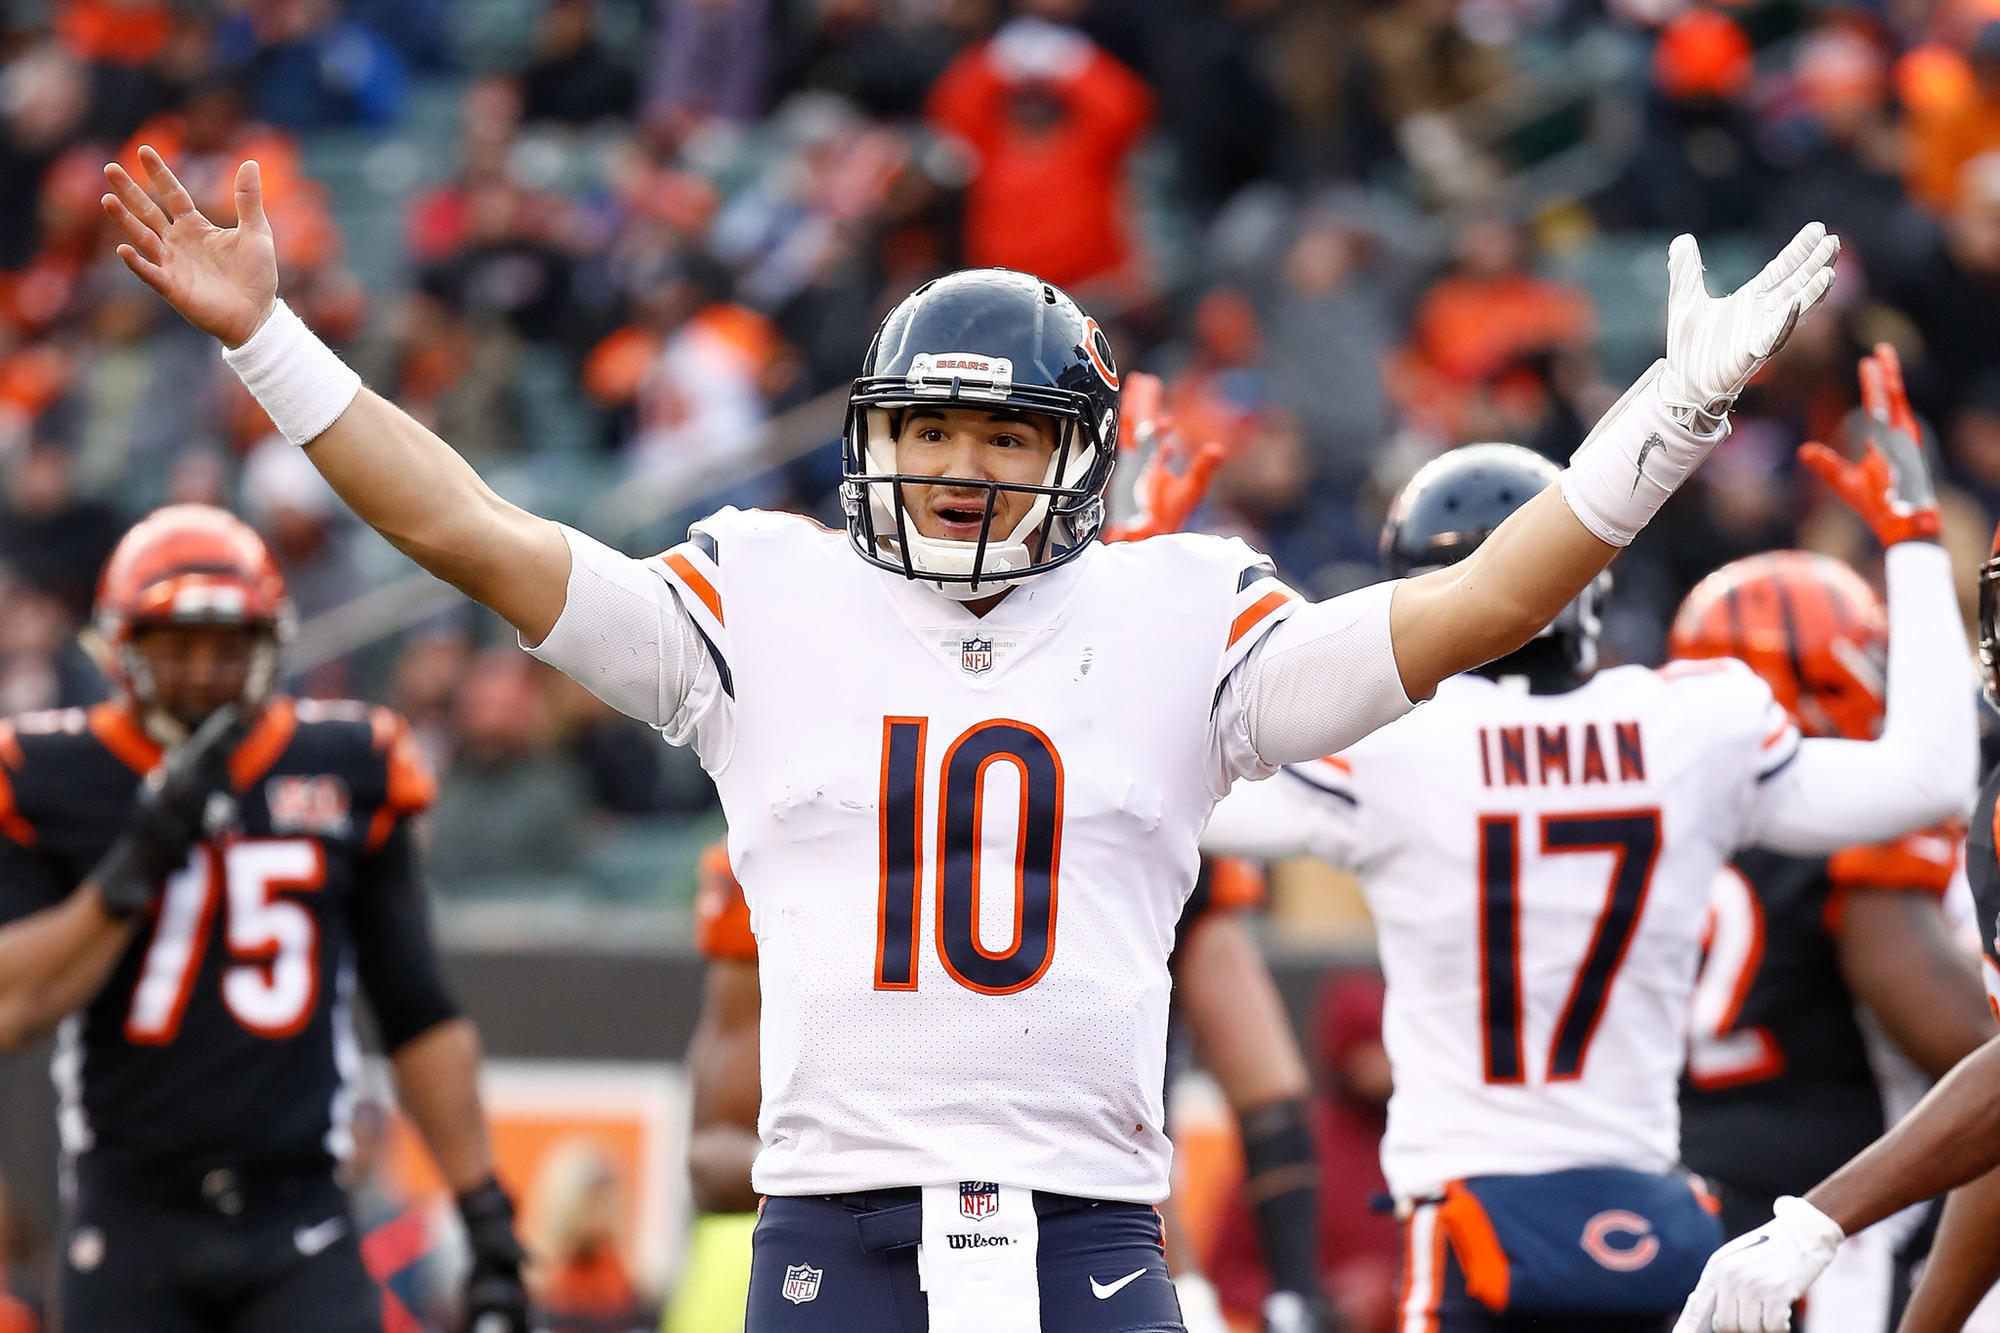 Ct-spt-bears-chicago-hope-mitch-trubisky-20171214